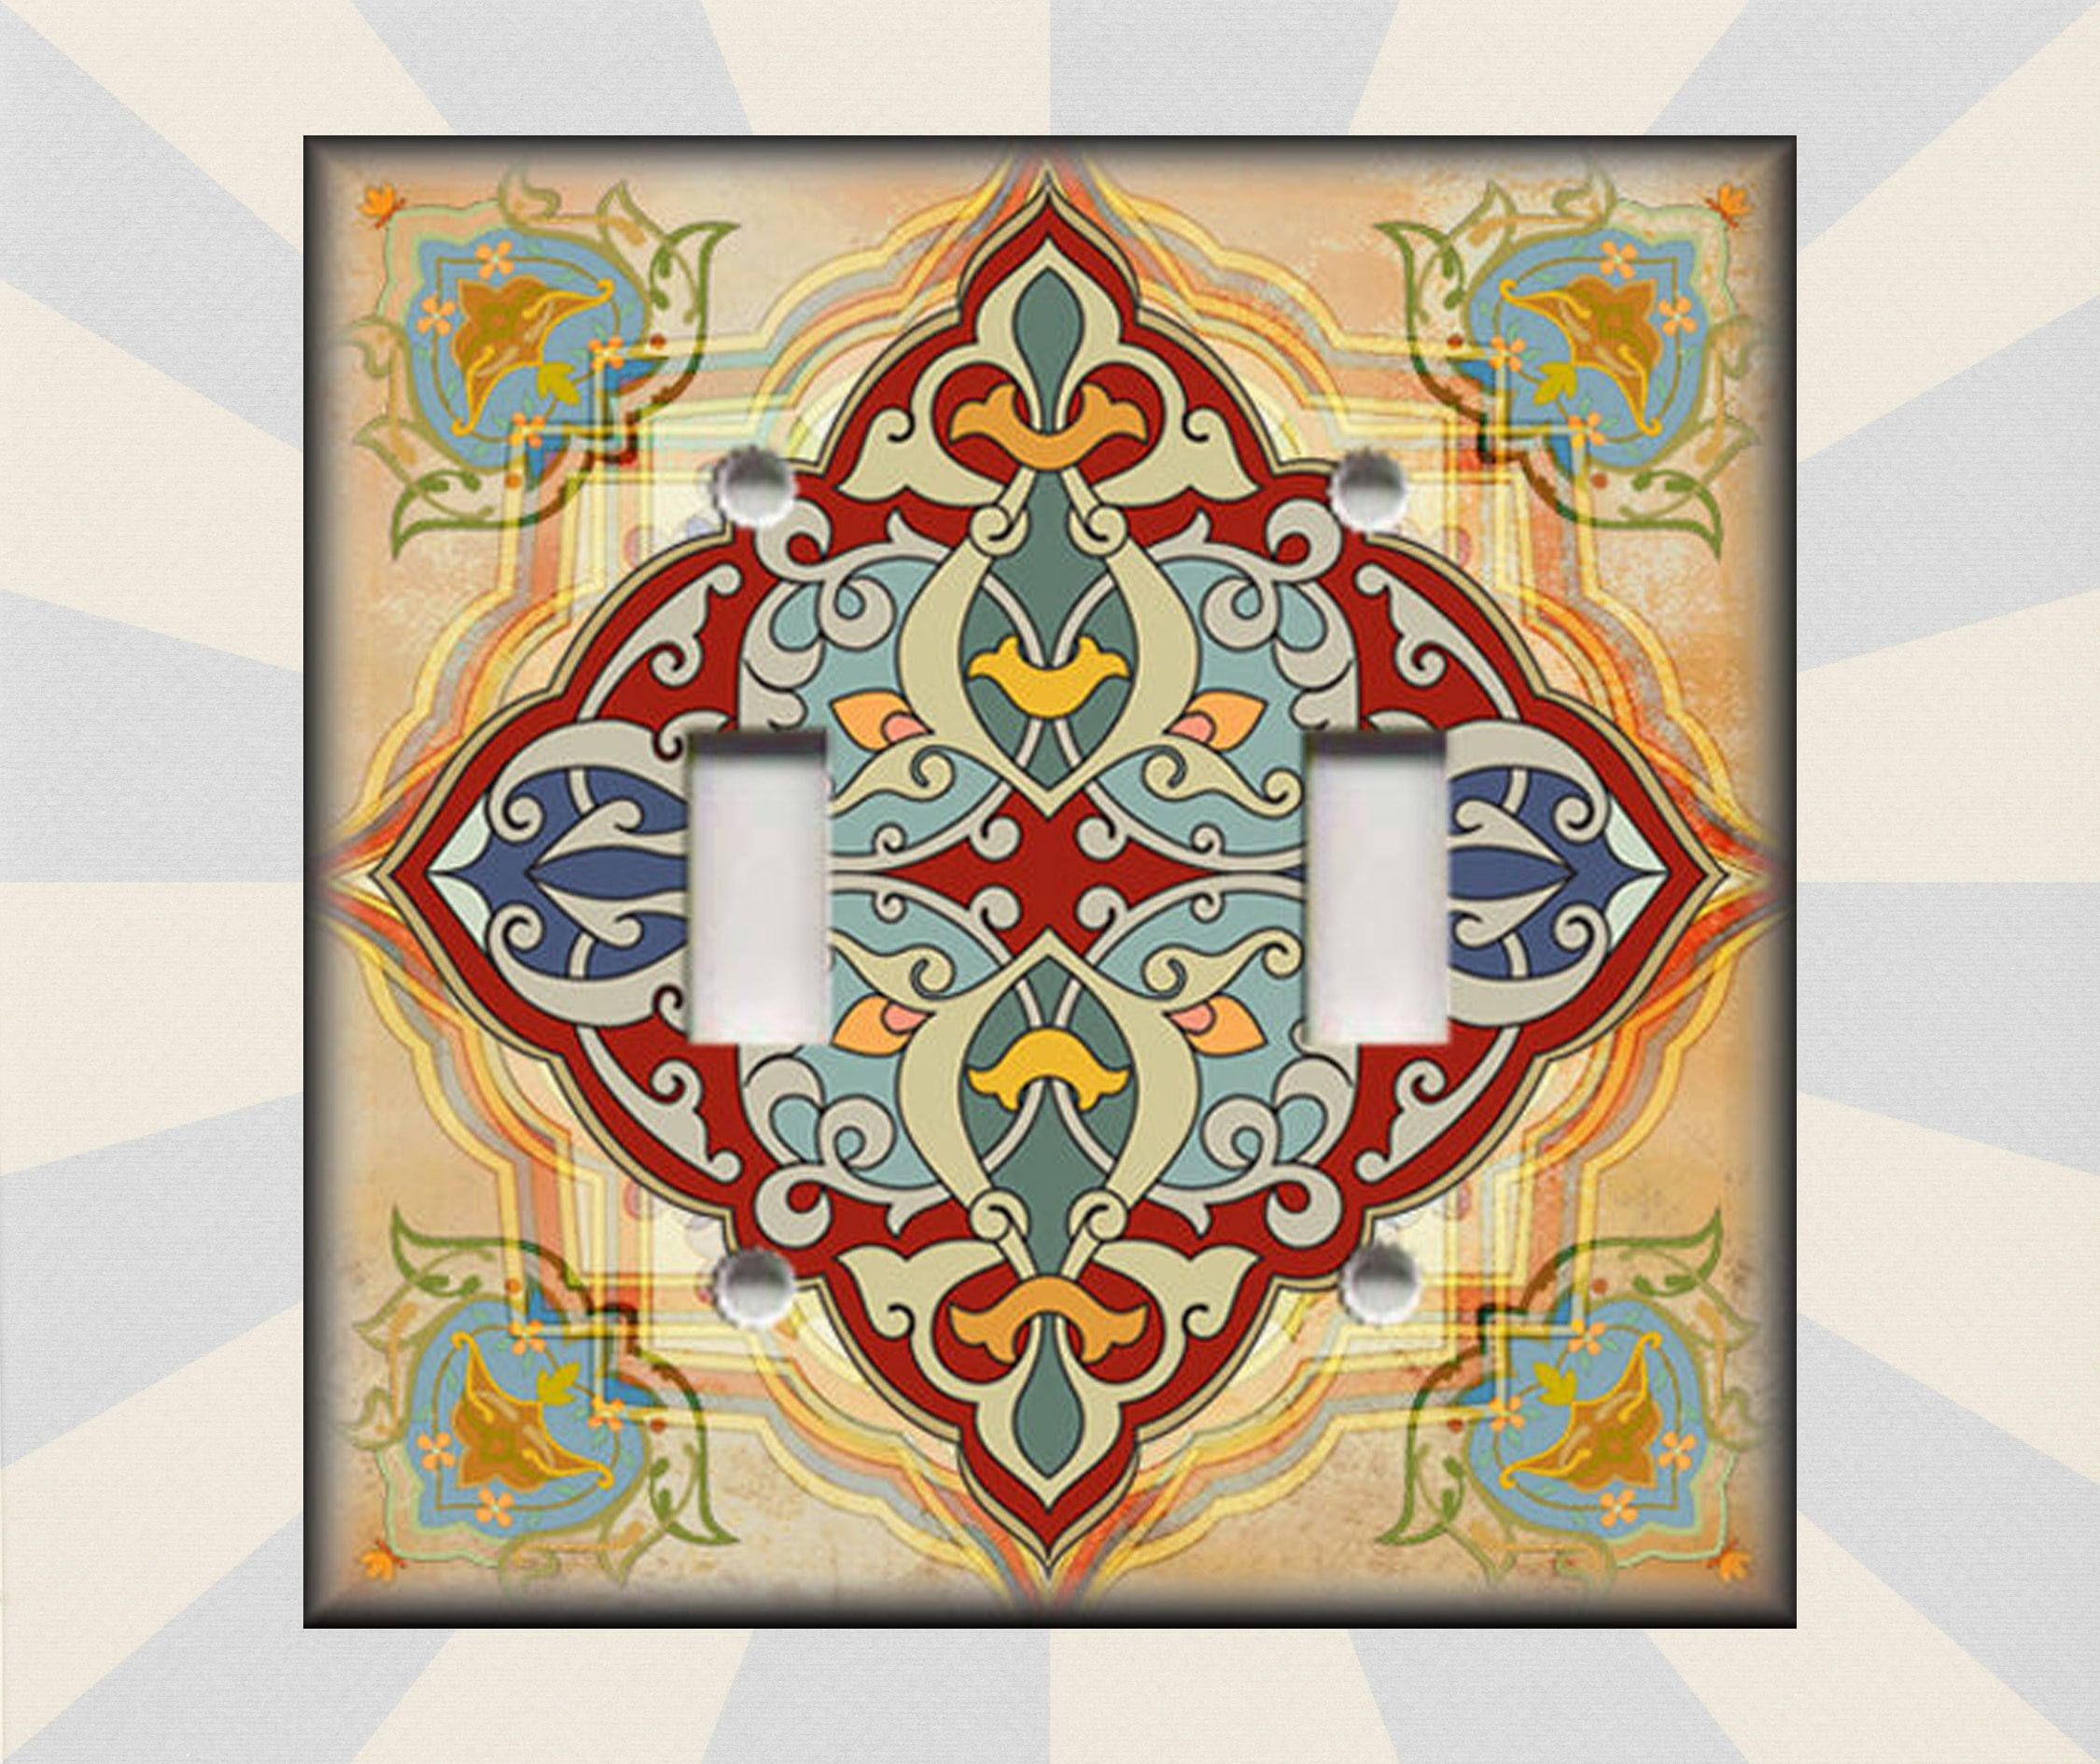 Metal Light Switch Cover Vintage Moroccan Decor Tile Design Decorative Switch Plate Covers And Outlet Covers Luna Gallery Free Shipping